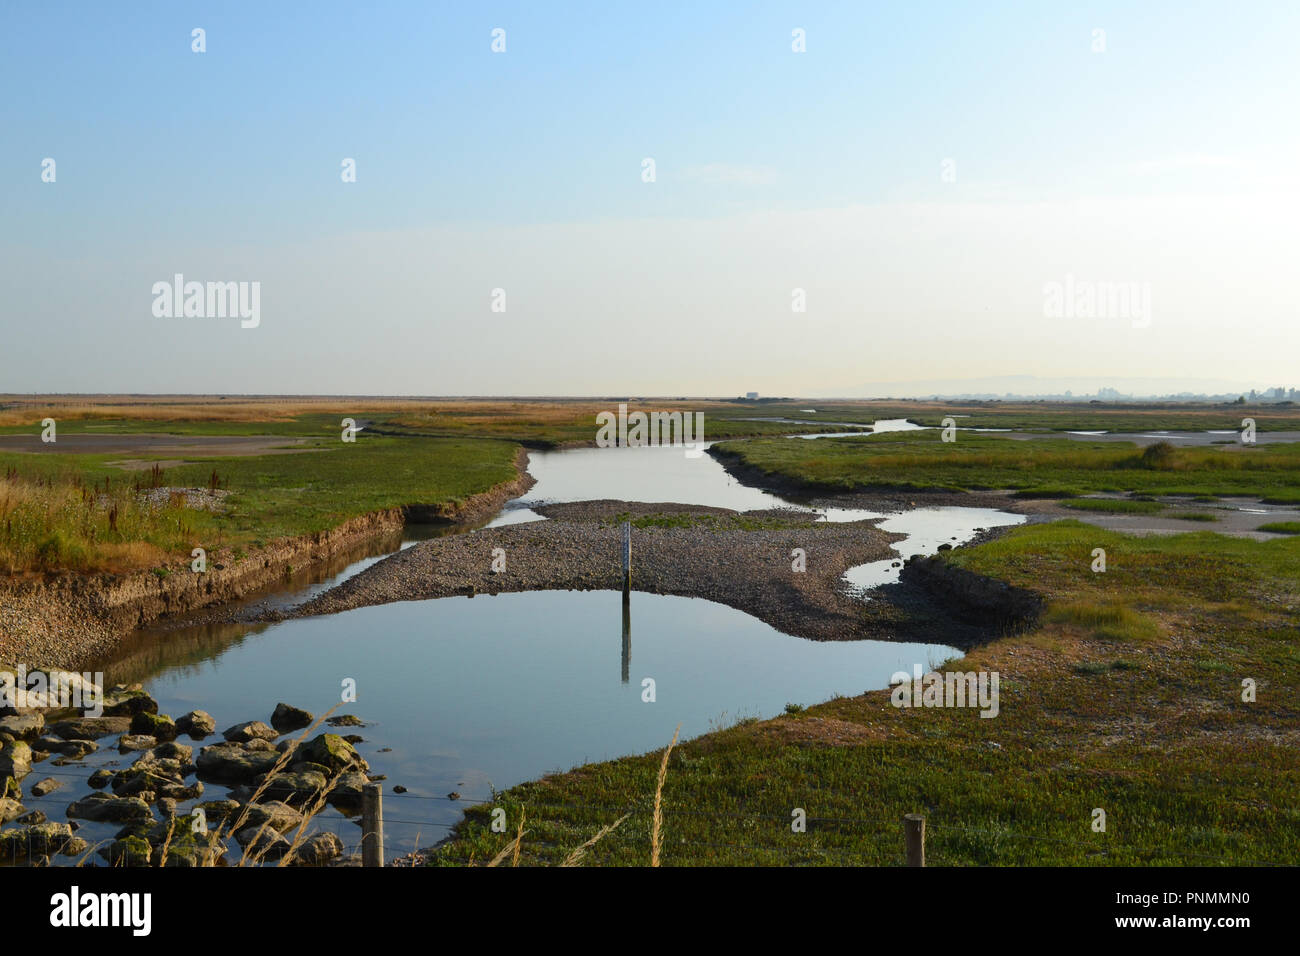 Drainage channels and lagoons in salt marsh at Rye Harbour, East Sussex, England, UK, late afternoon on hot summer's day - Stock Image